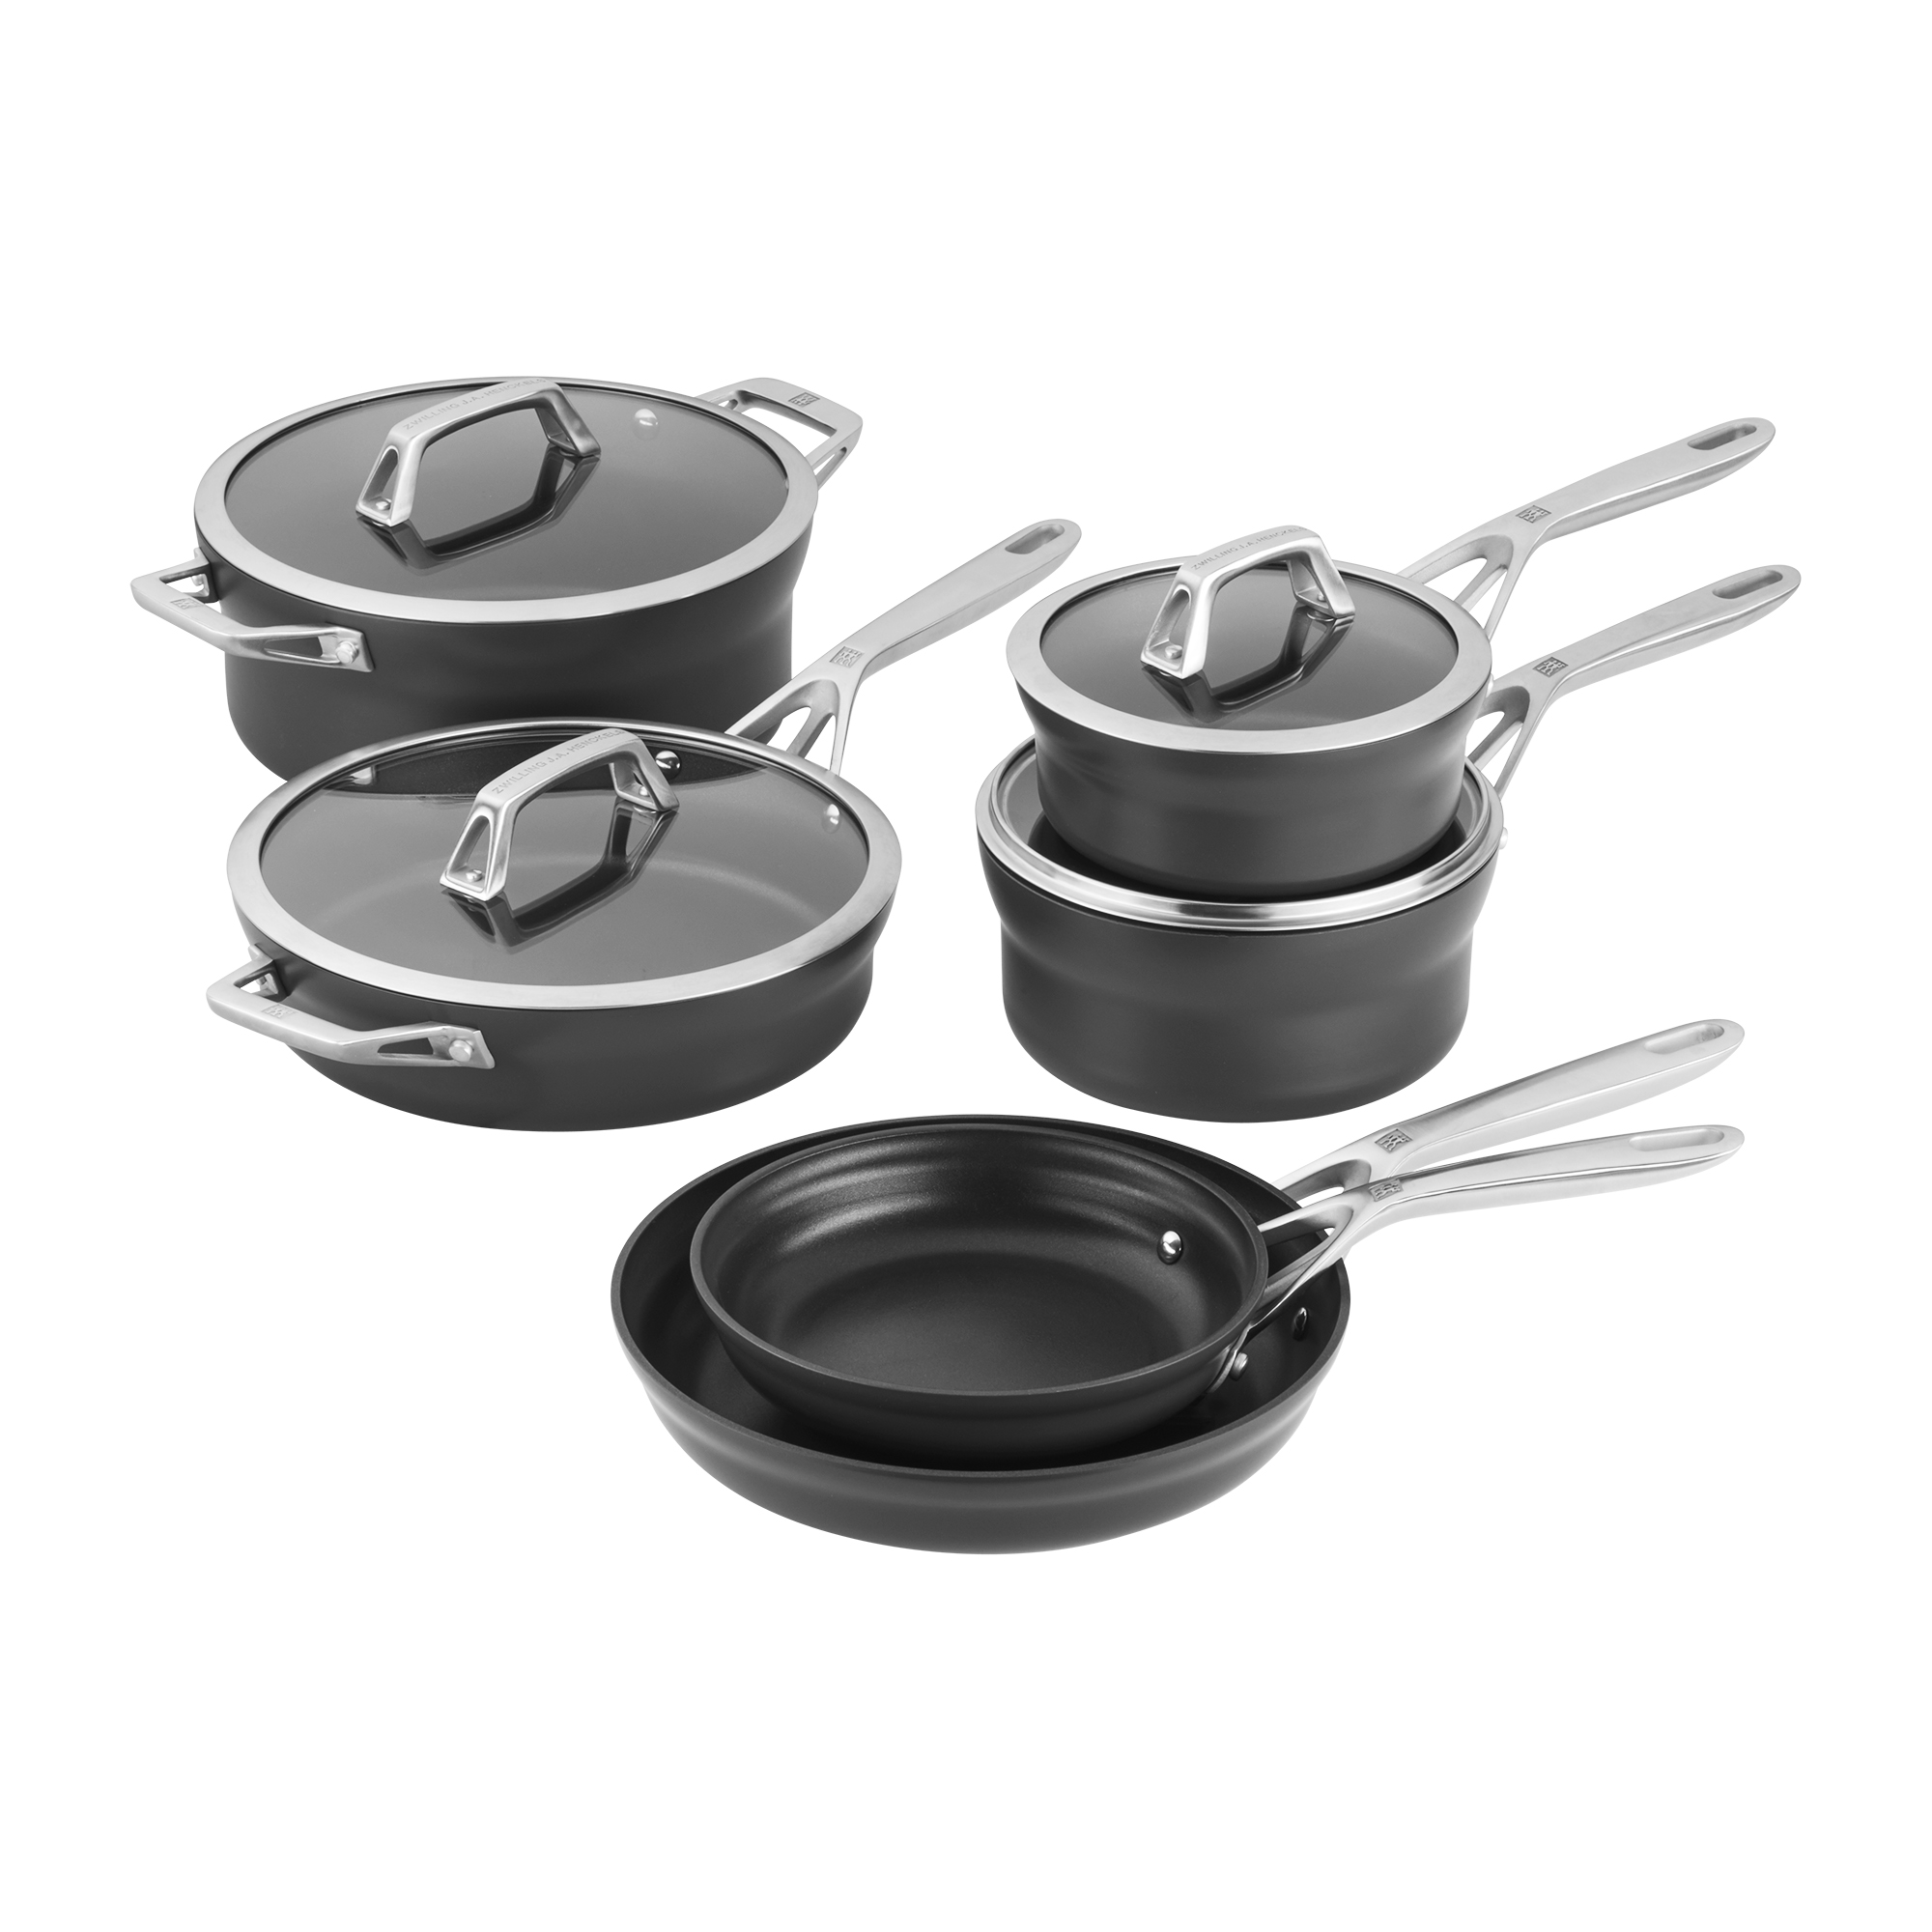 Zwilling Motion 10 Piece Hard Anodized Aluminum Nonstick